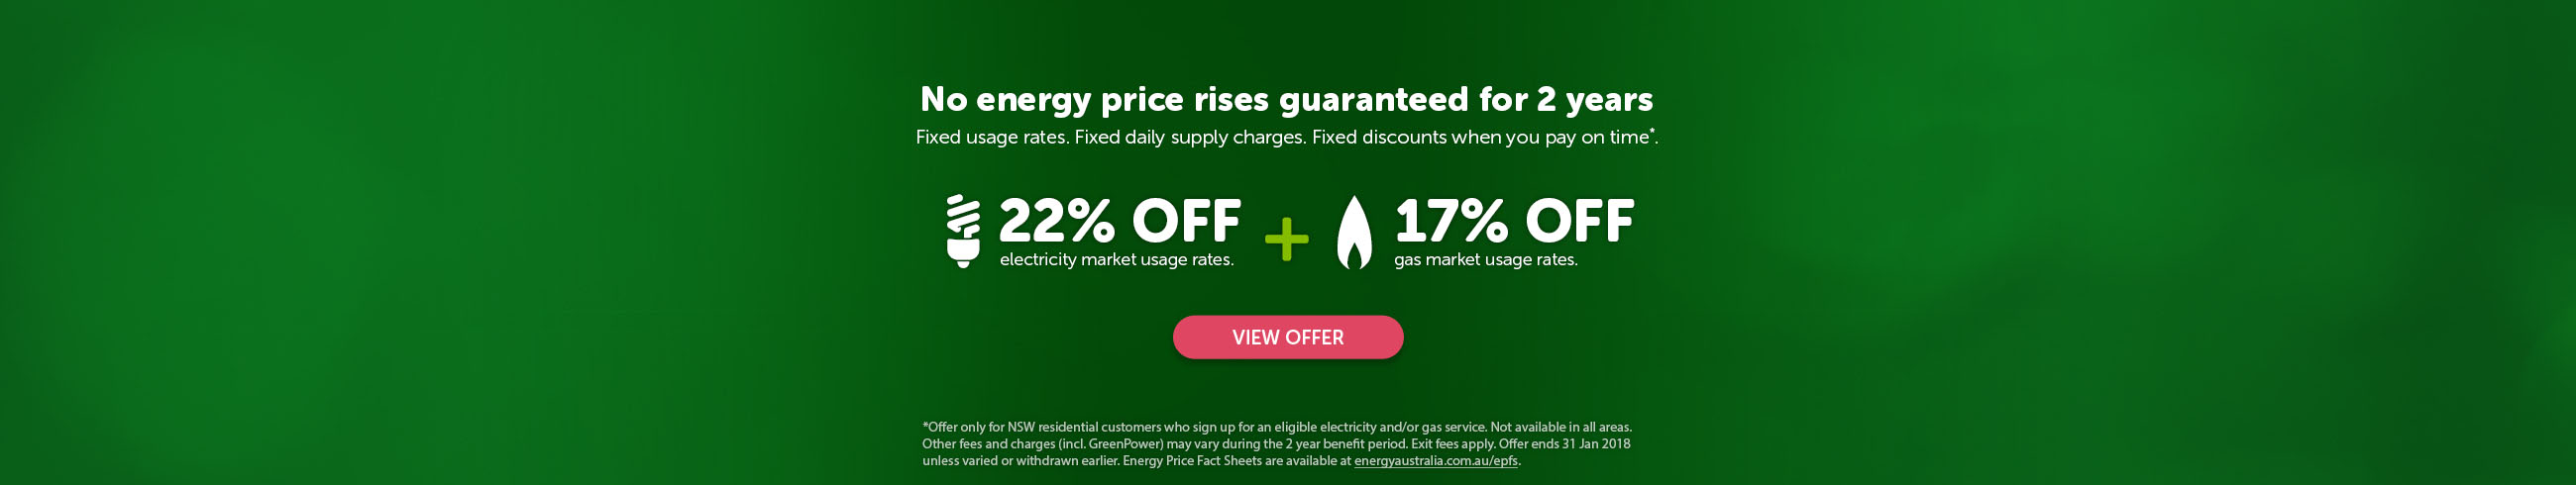 No energy price rises guaranteed for 2 years. Fixed usage rates. Fixed daily supply charges. Fixed discounts when you pay on time*. 20% off electricity market usage rates plus 17% off gas market usage rates.